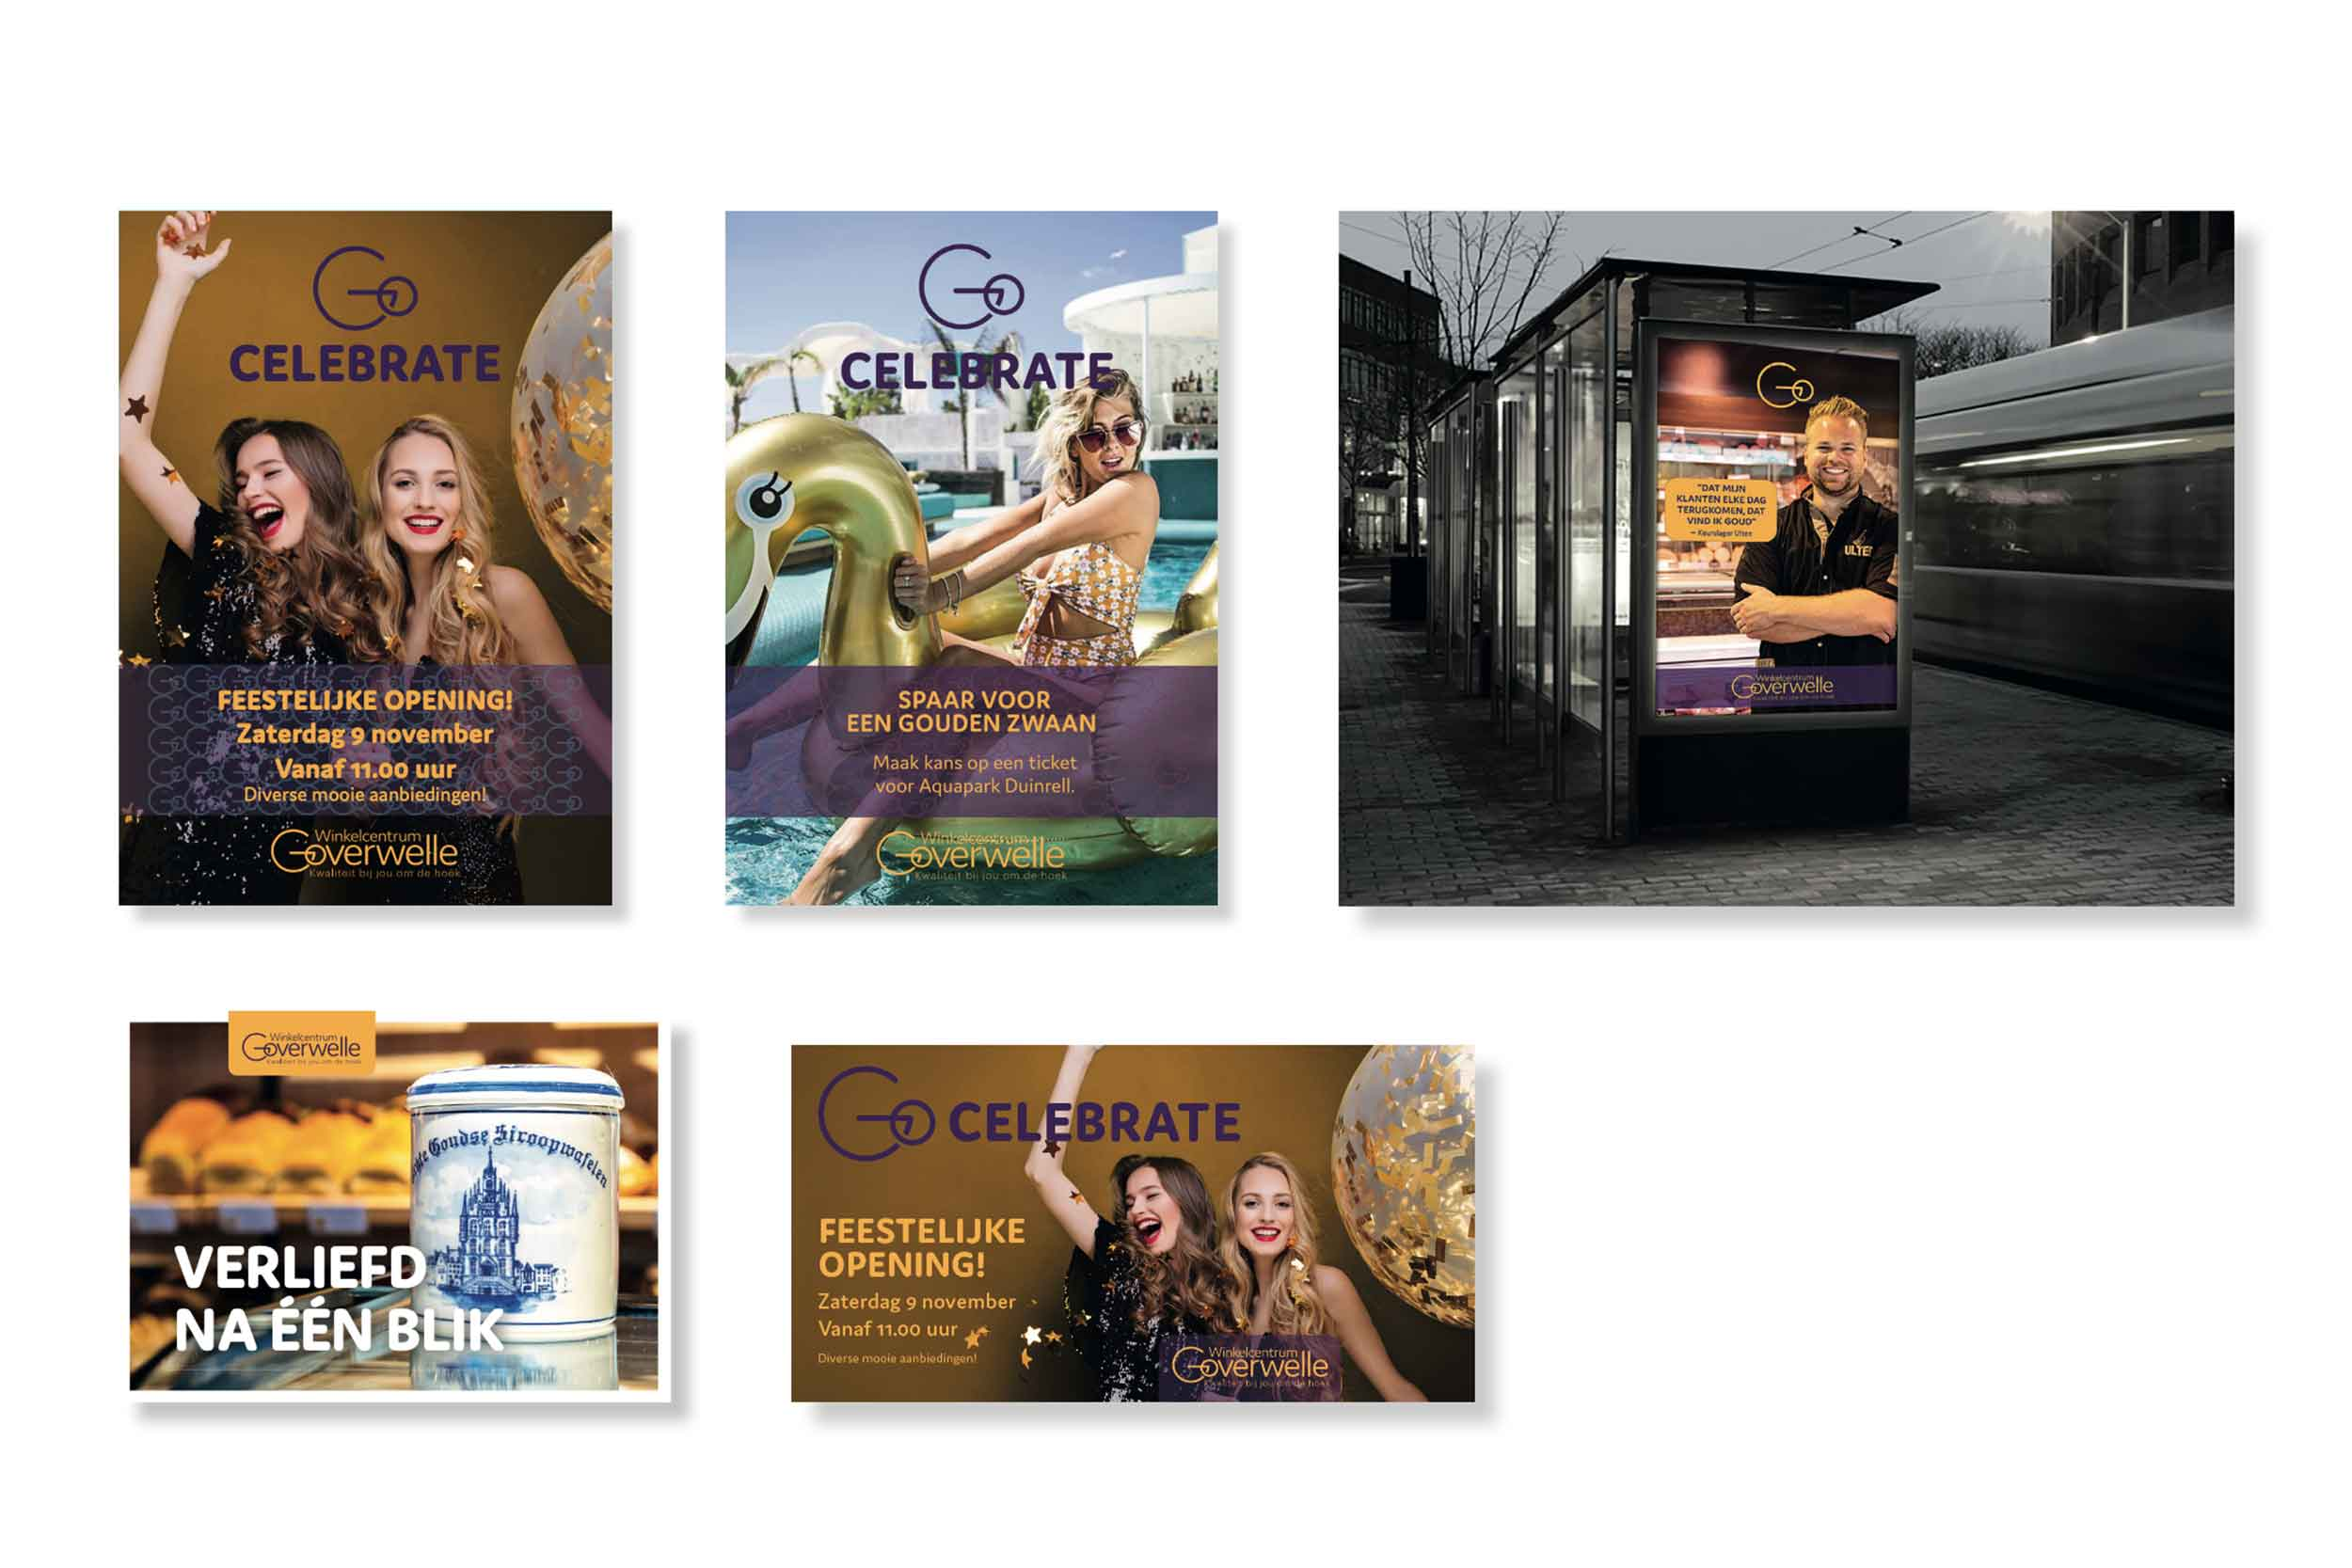 Winkelcentrum Goverwelle - Gouda reclame posters © Urban Solutions (strategie - concept)